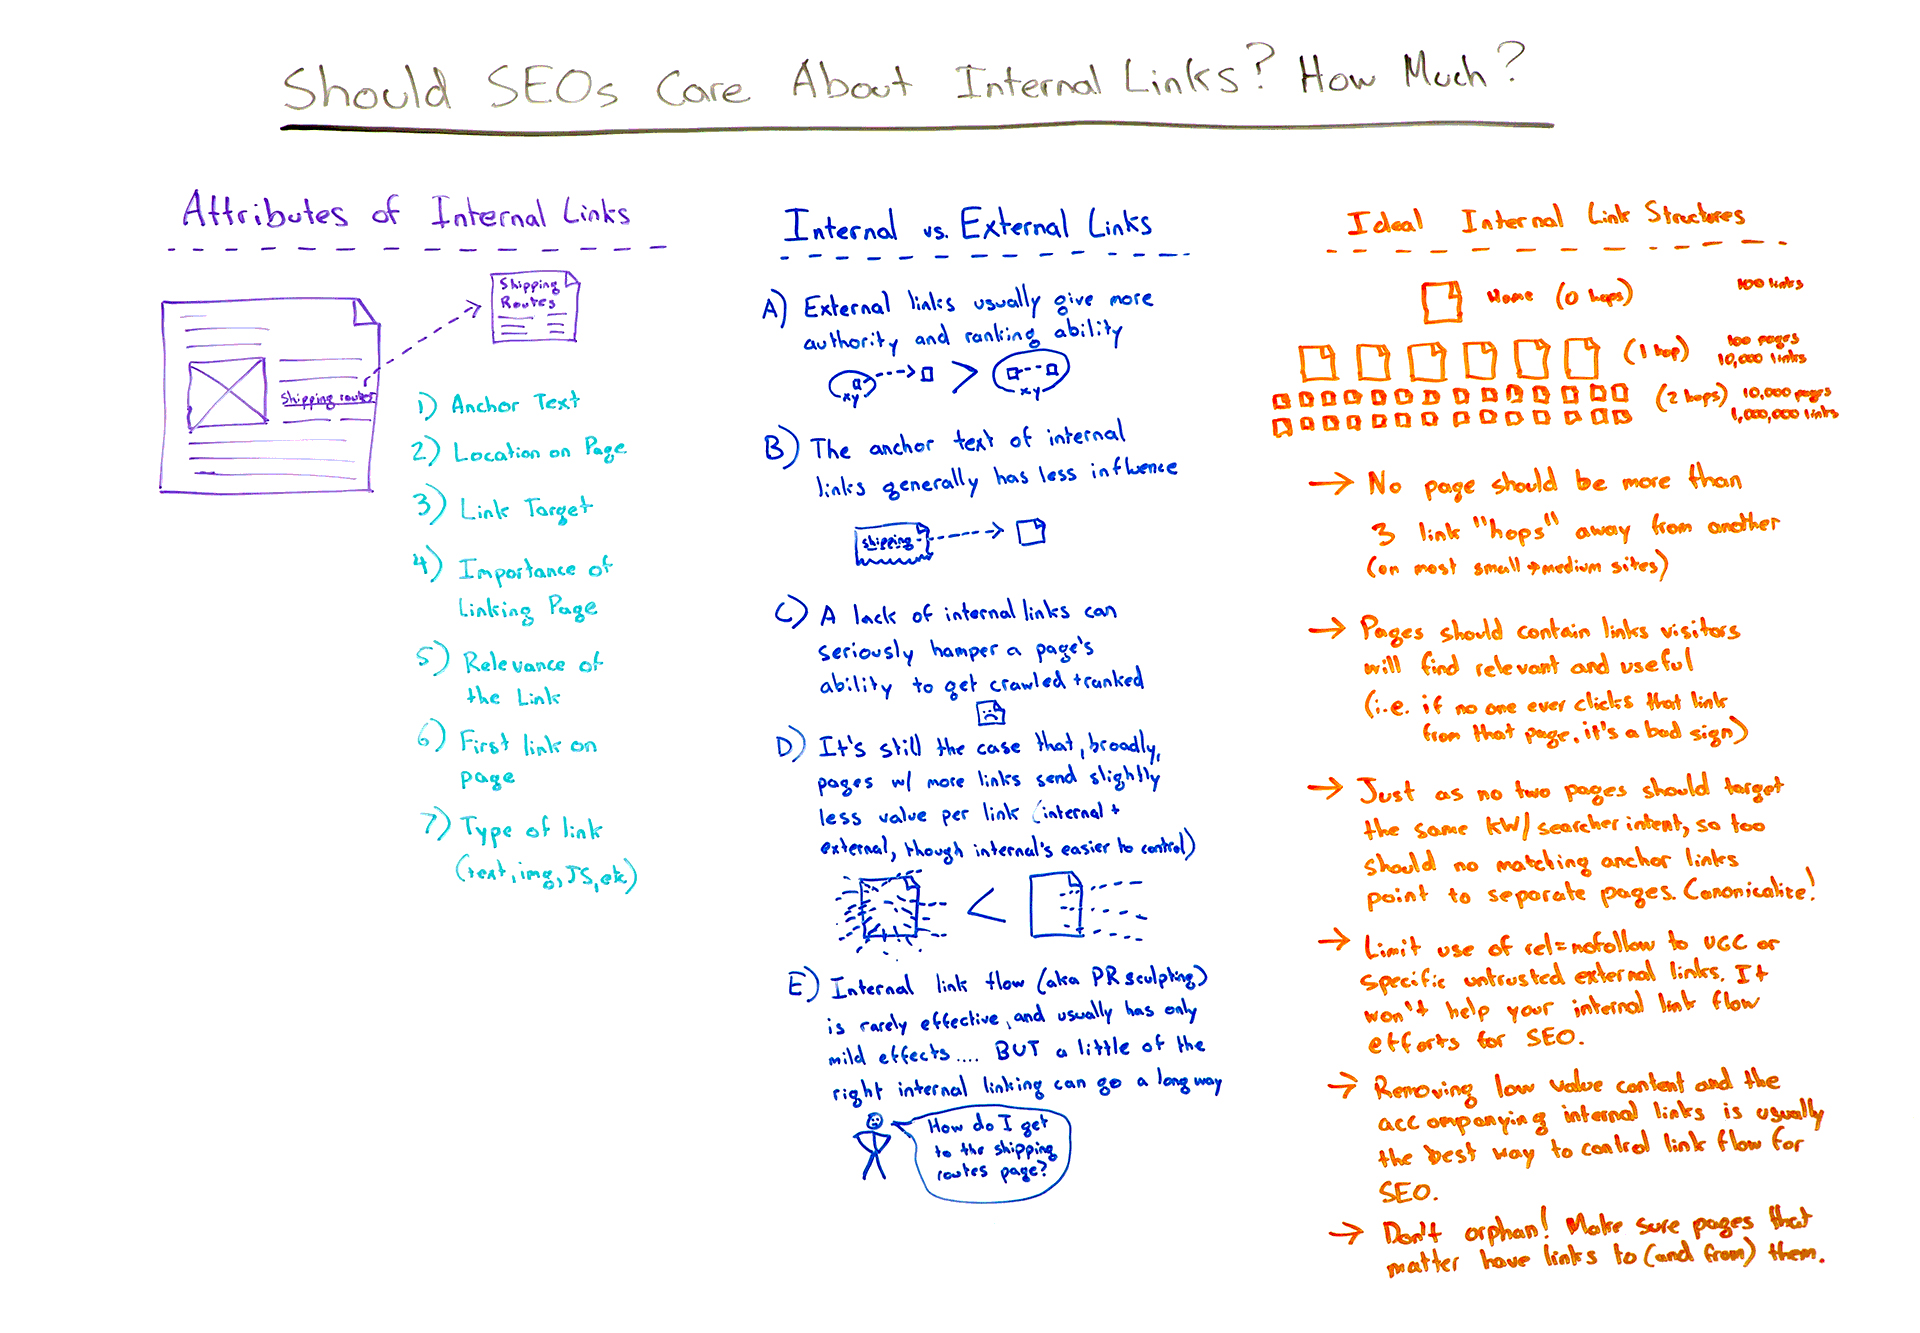 https://moz.com/blog/should-seos-care-about-internal-links-whiteboard-friday